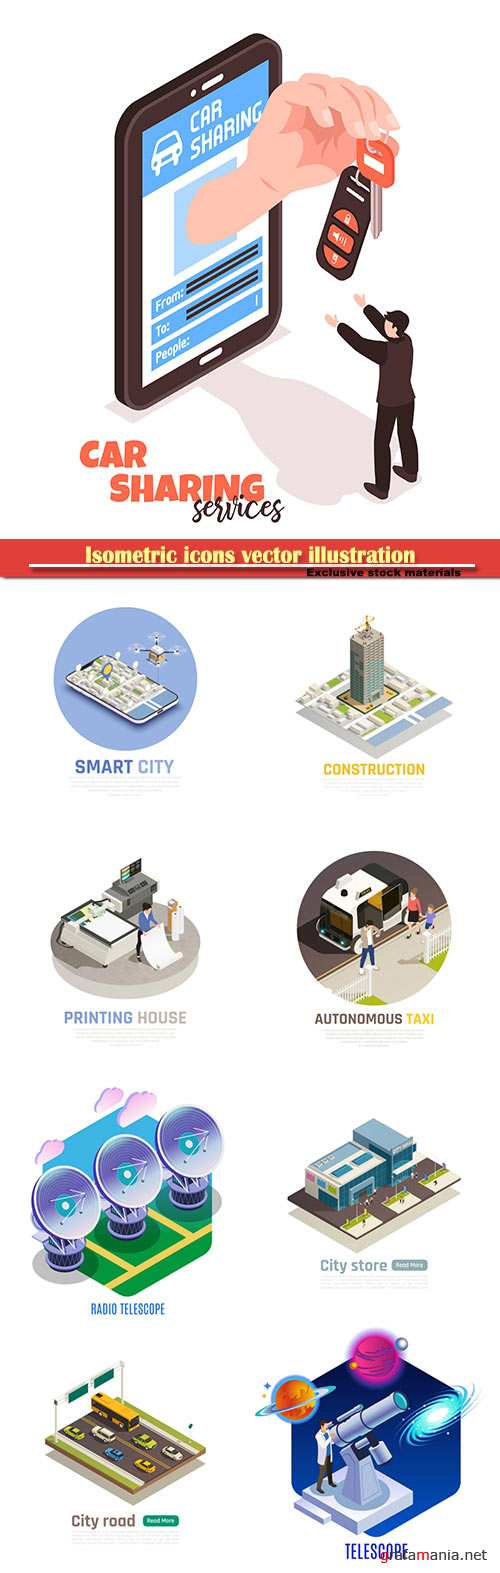 Isometric icons vector illustration, banner design template # 34